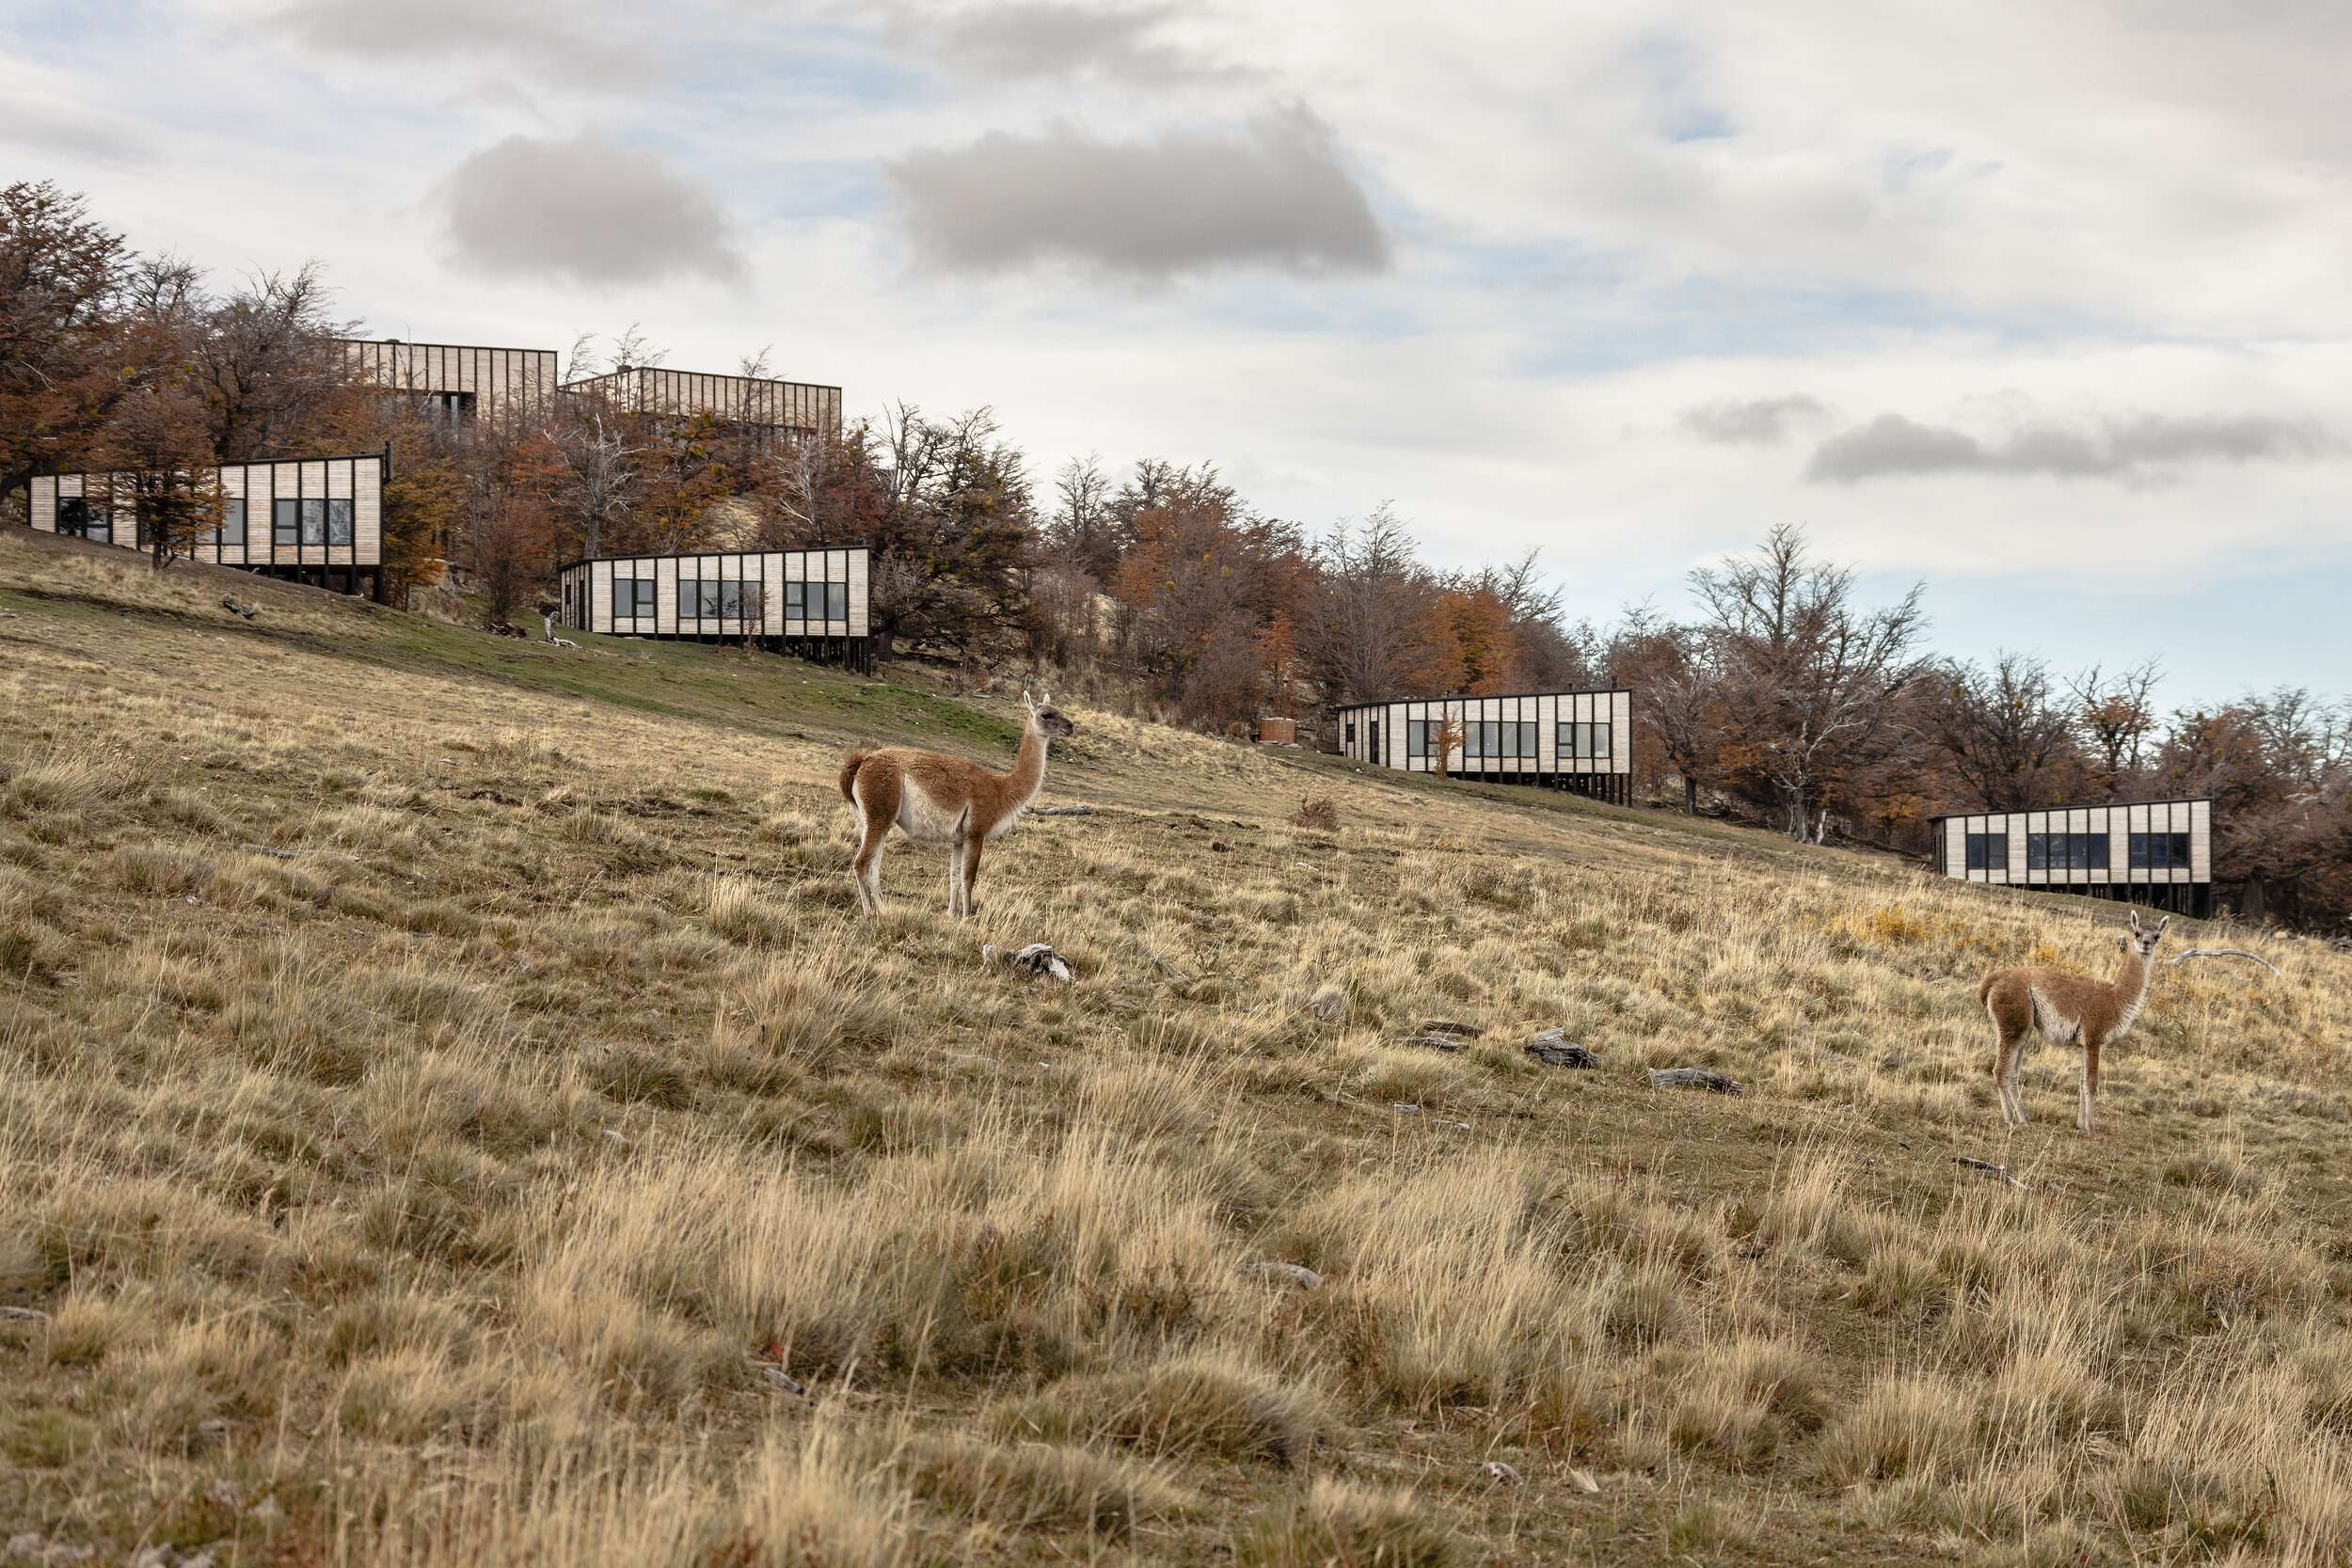 brown and white alpaca stands in a large area of grass with wooden lodges in the background at Awasi Patagonia